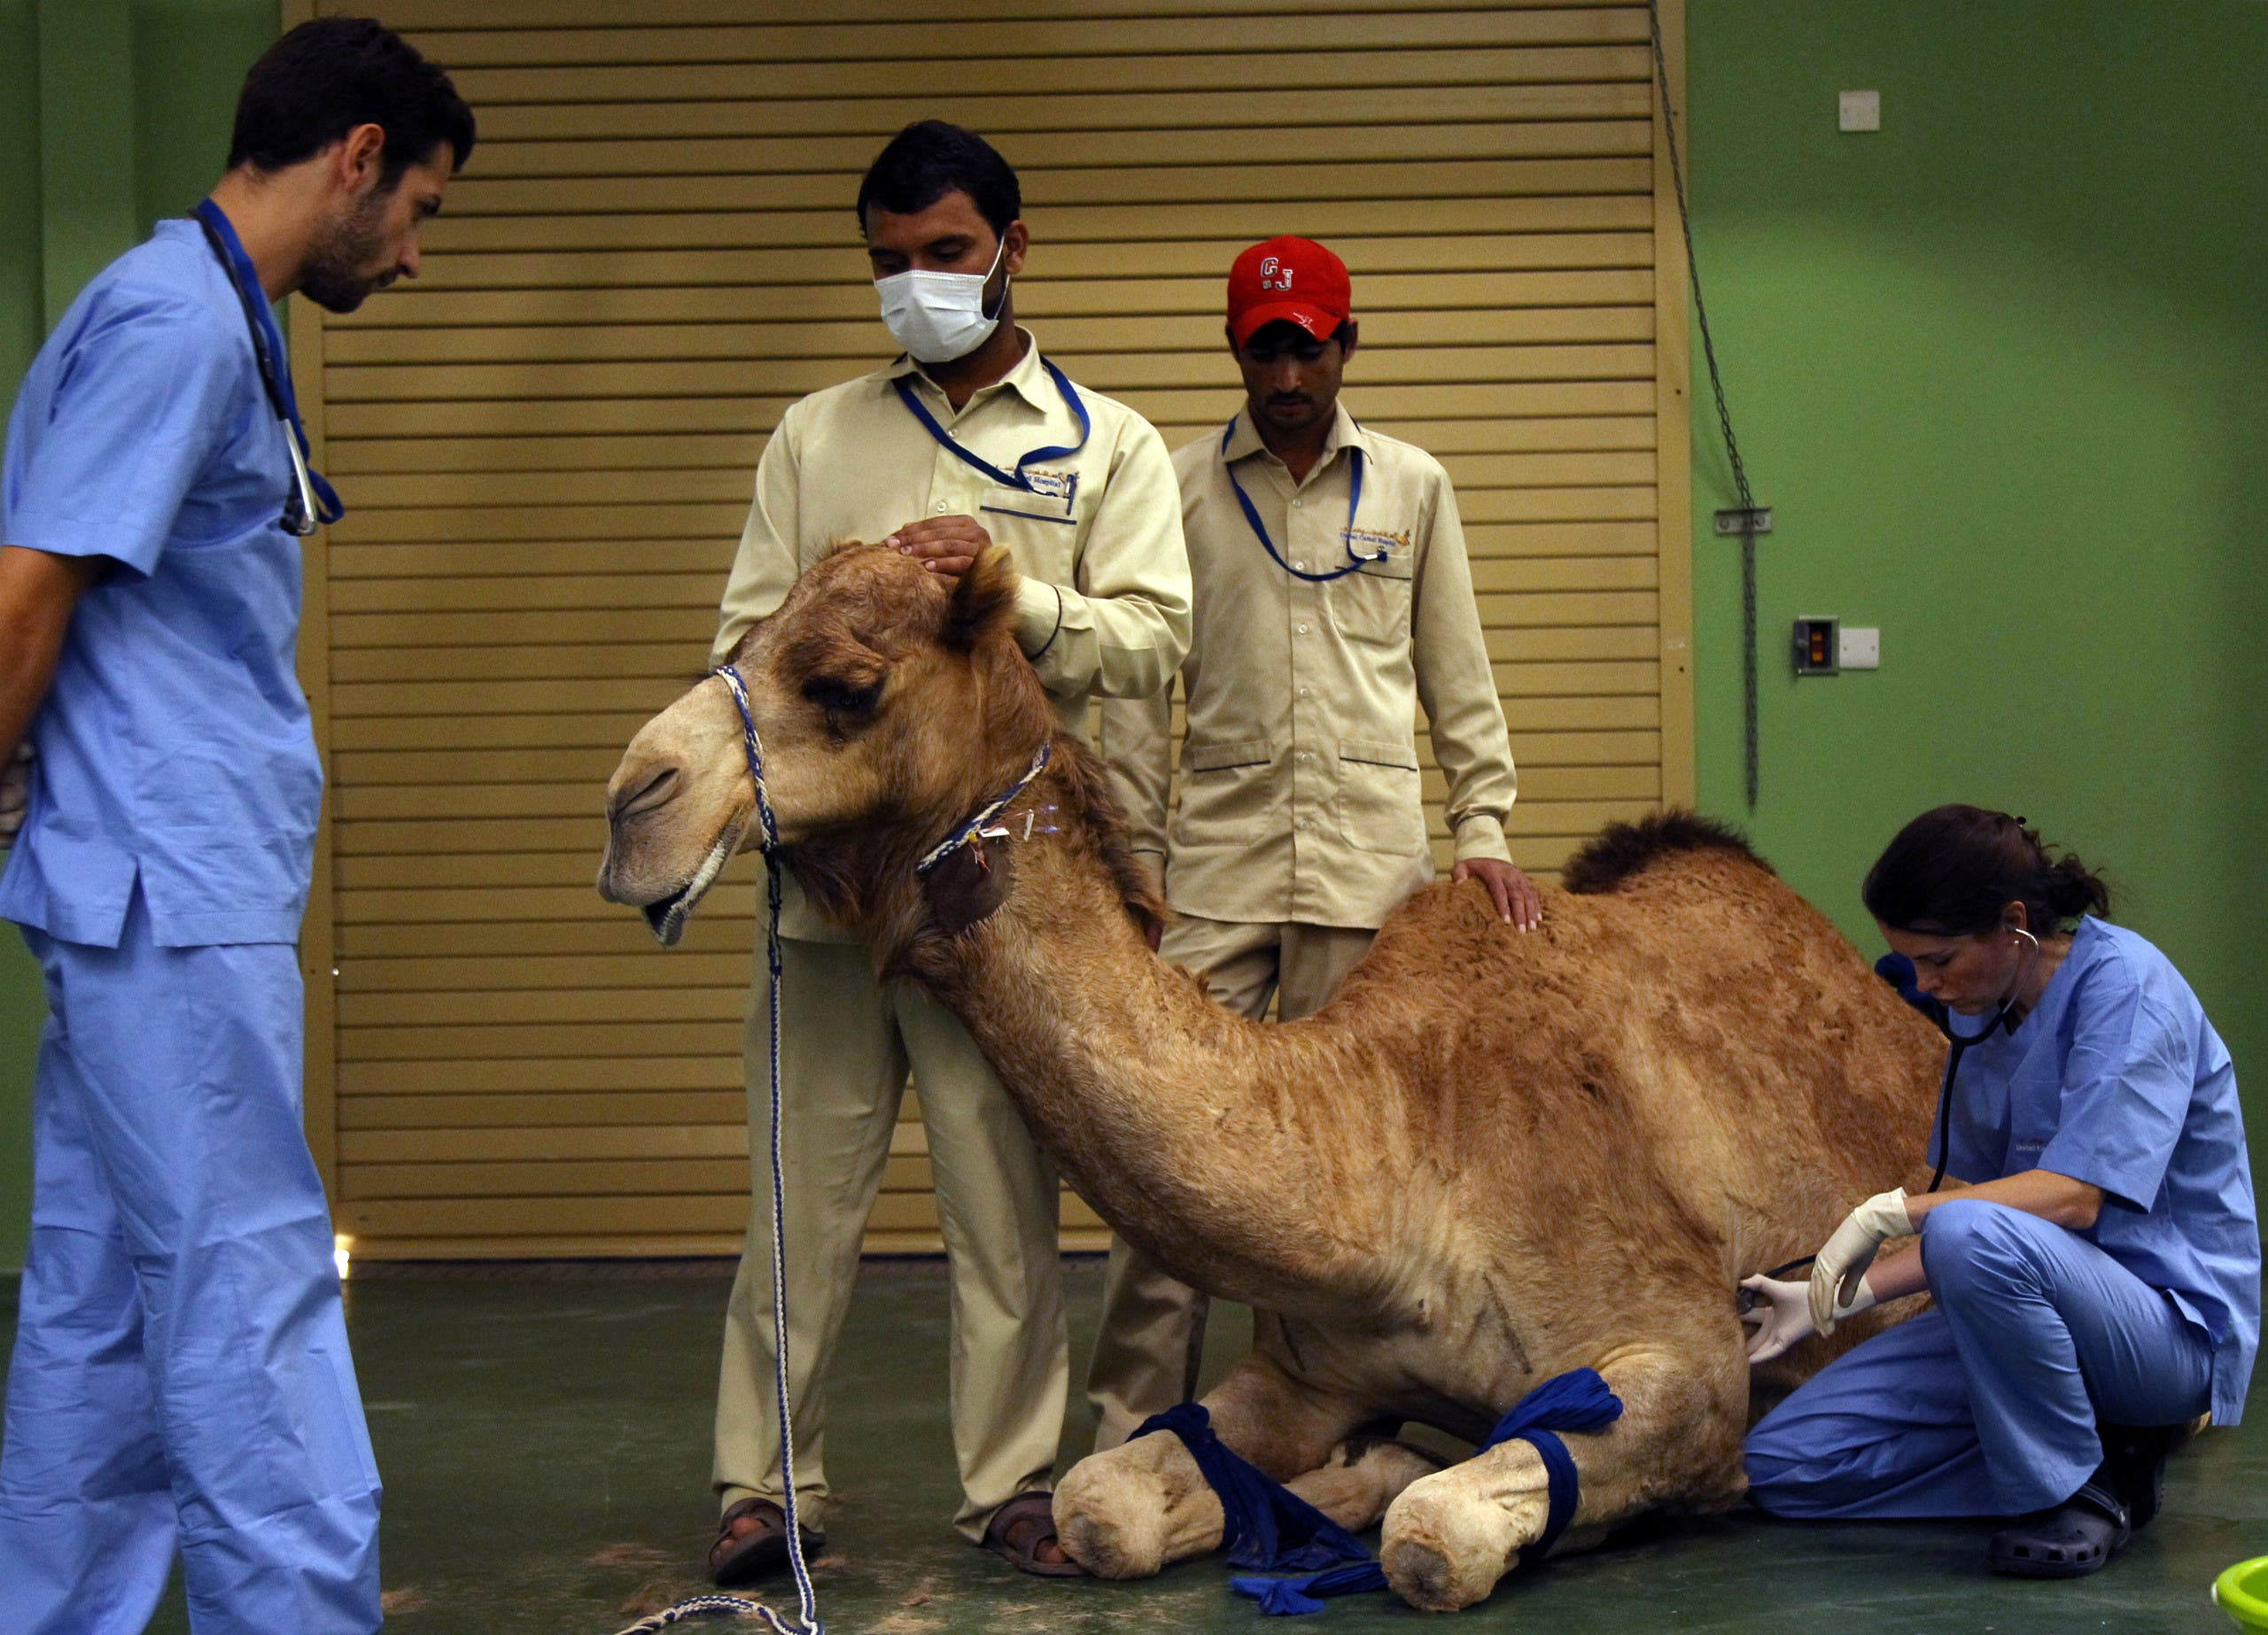 A camel receives an injection before a foot surgery at the Dubai Camel Hospital in Dubai, UAE, December 11, 2017. (Reuters)